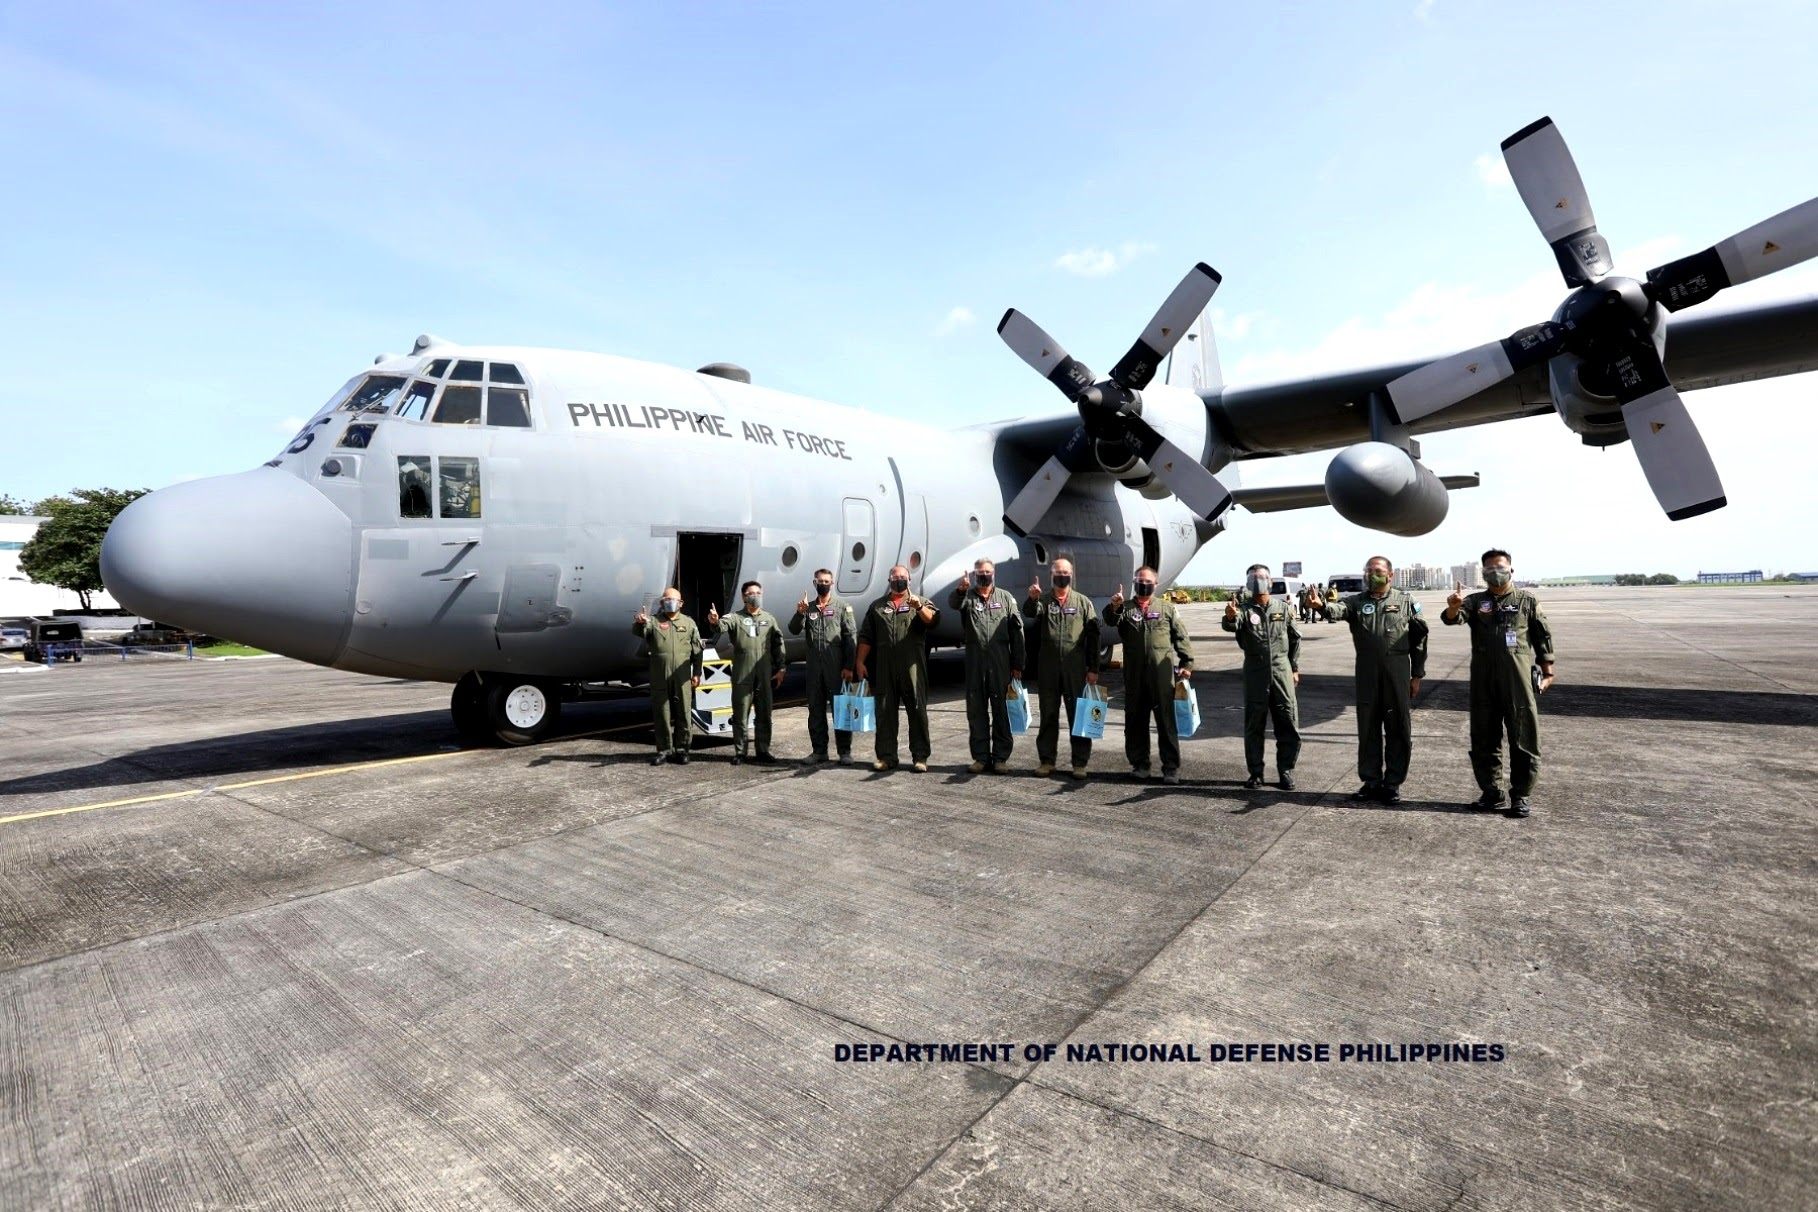 PHILIPPINES Air Force gets a lift with new ₱2.5 billion C-130H from US